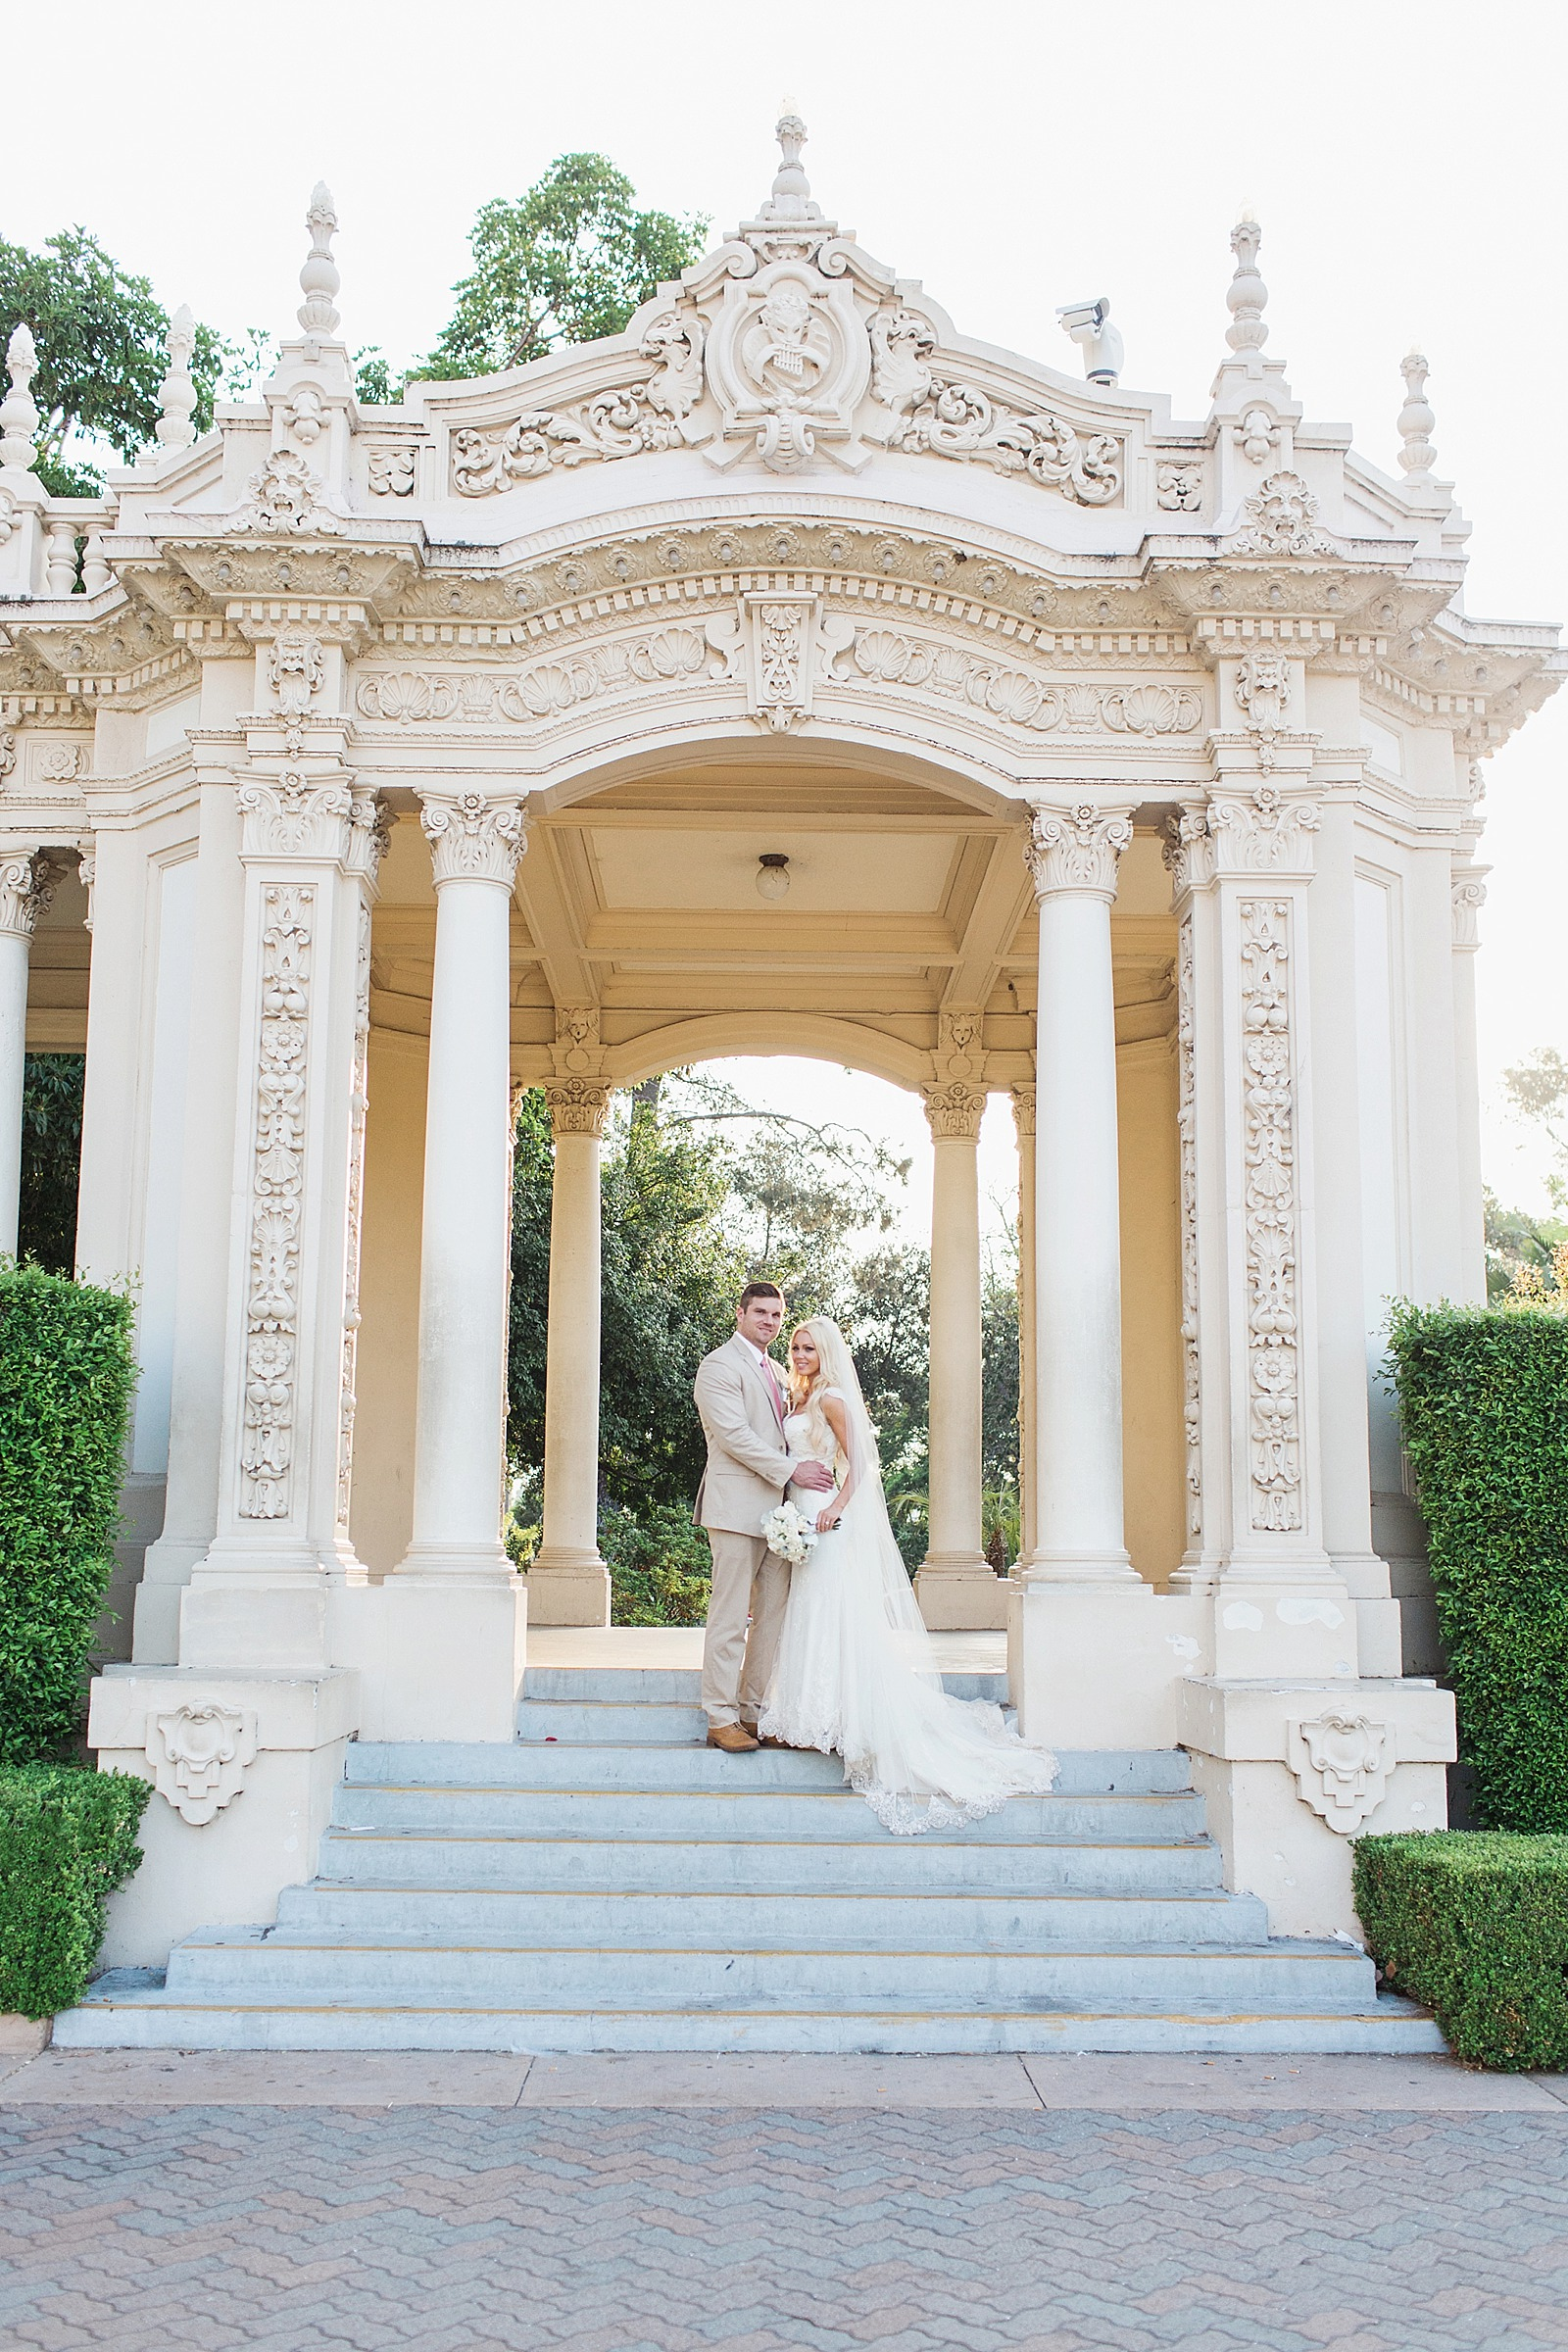 diana-elizabeth-photography-balboa-park-wedding-portraits-photography_0210